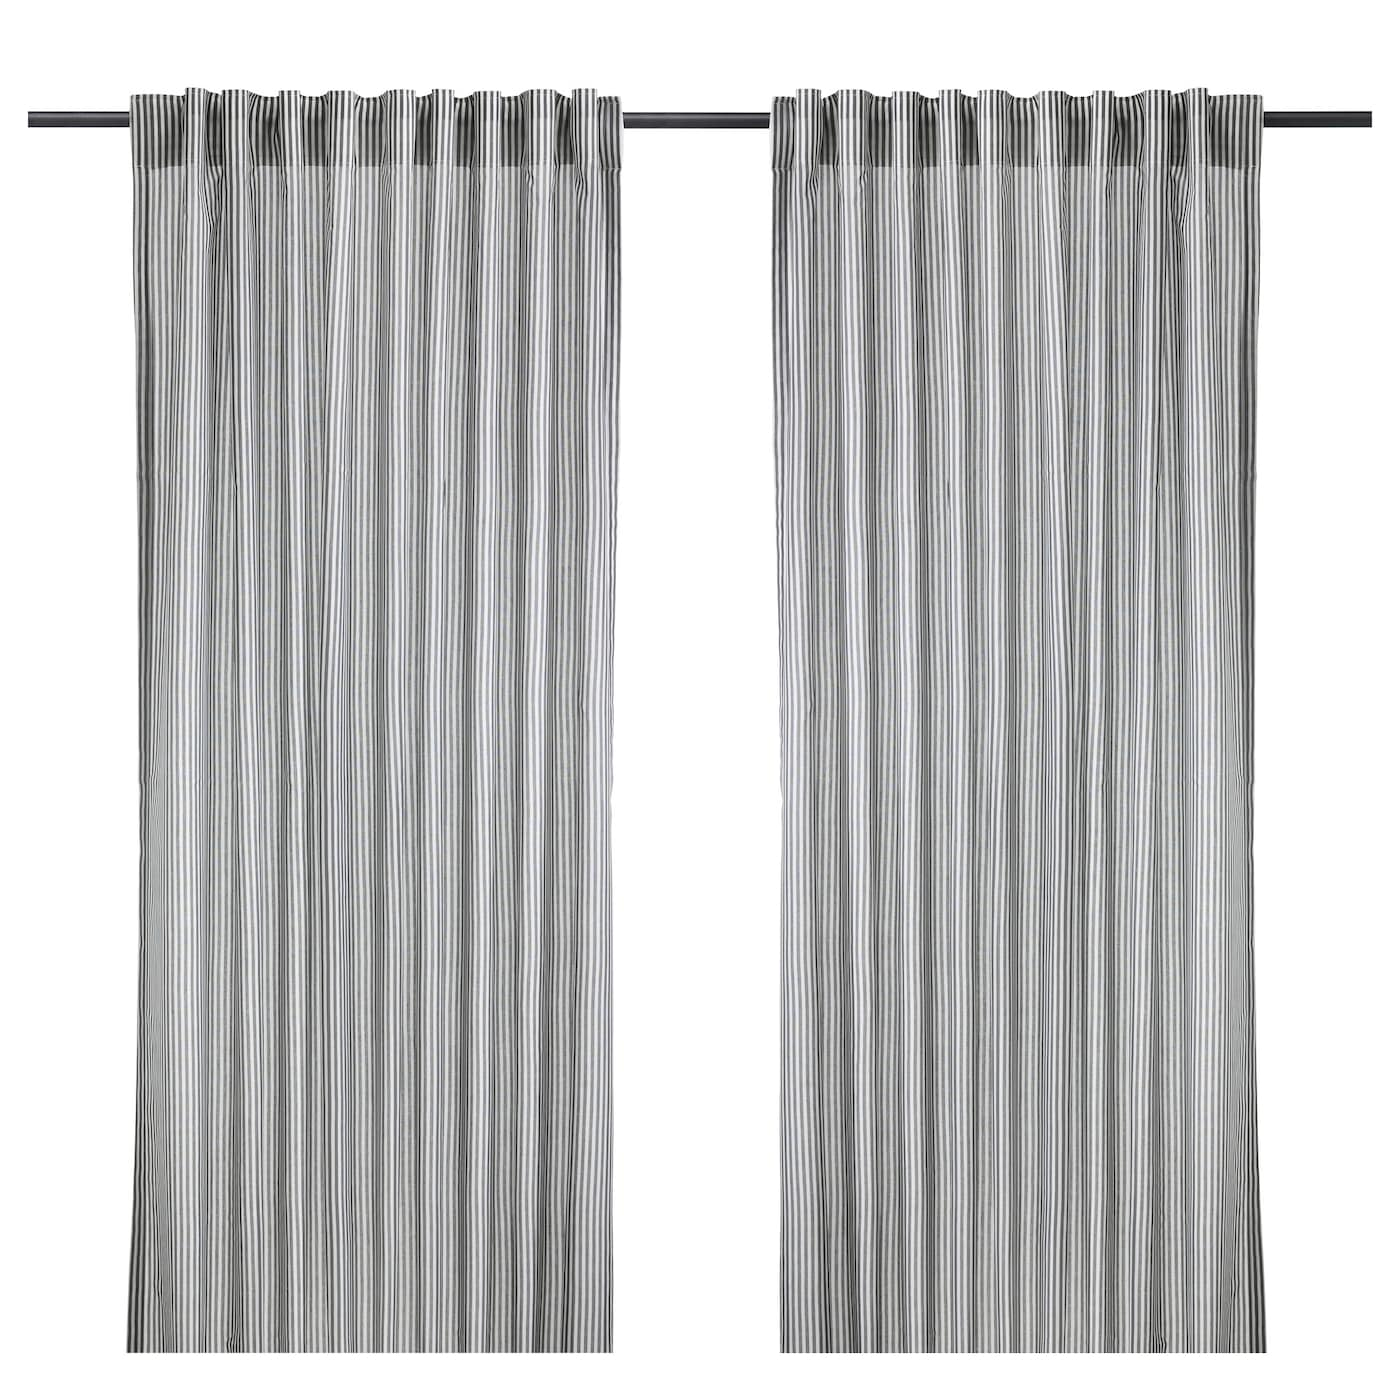 Gulsporre Curtains 1 Pair White Grey 145x250 Cm Ikea